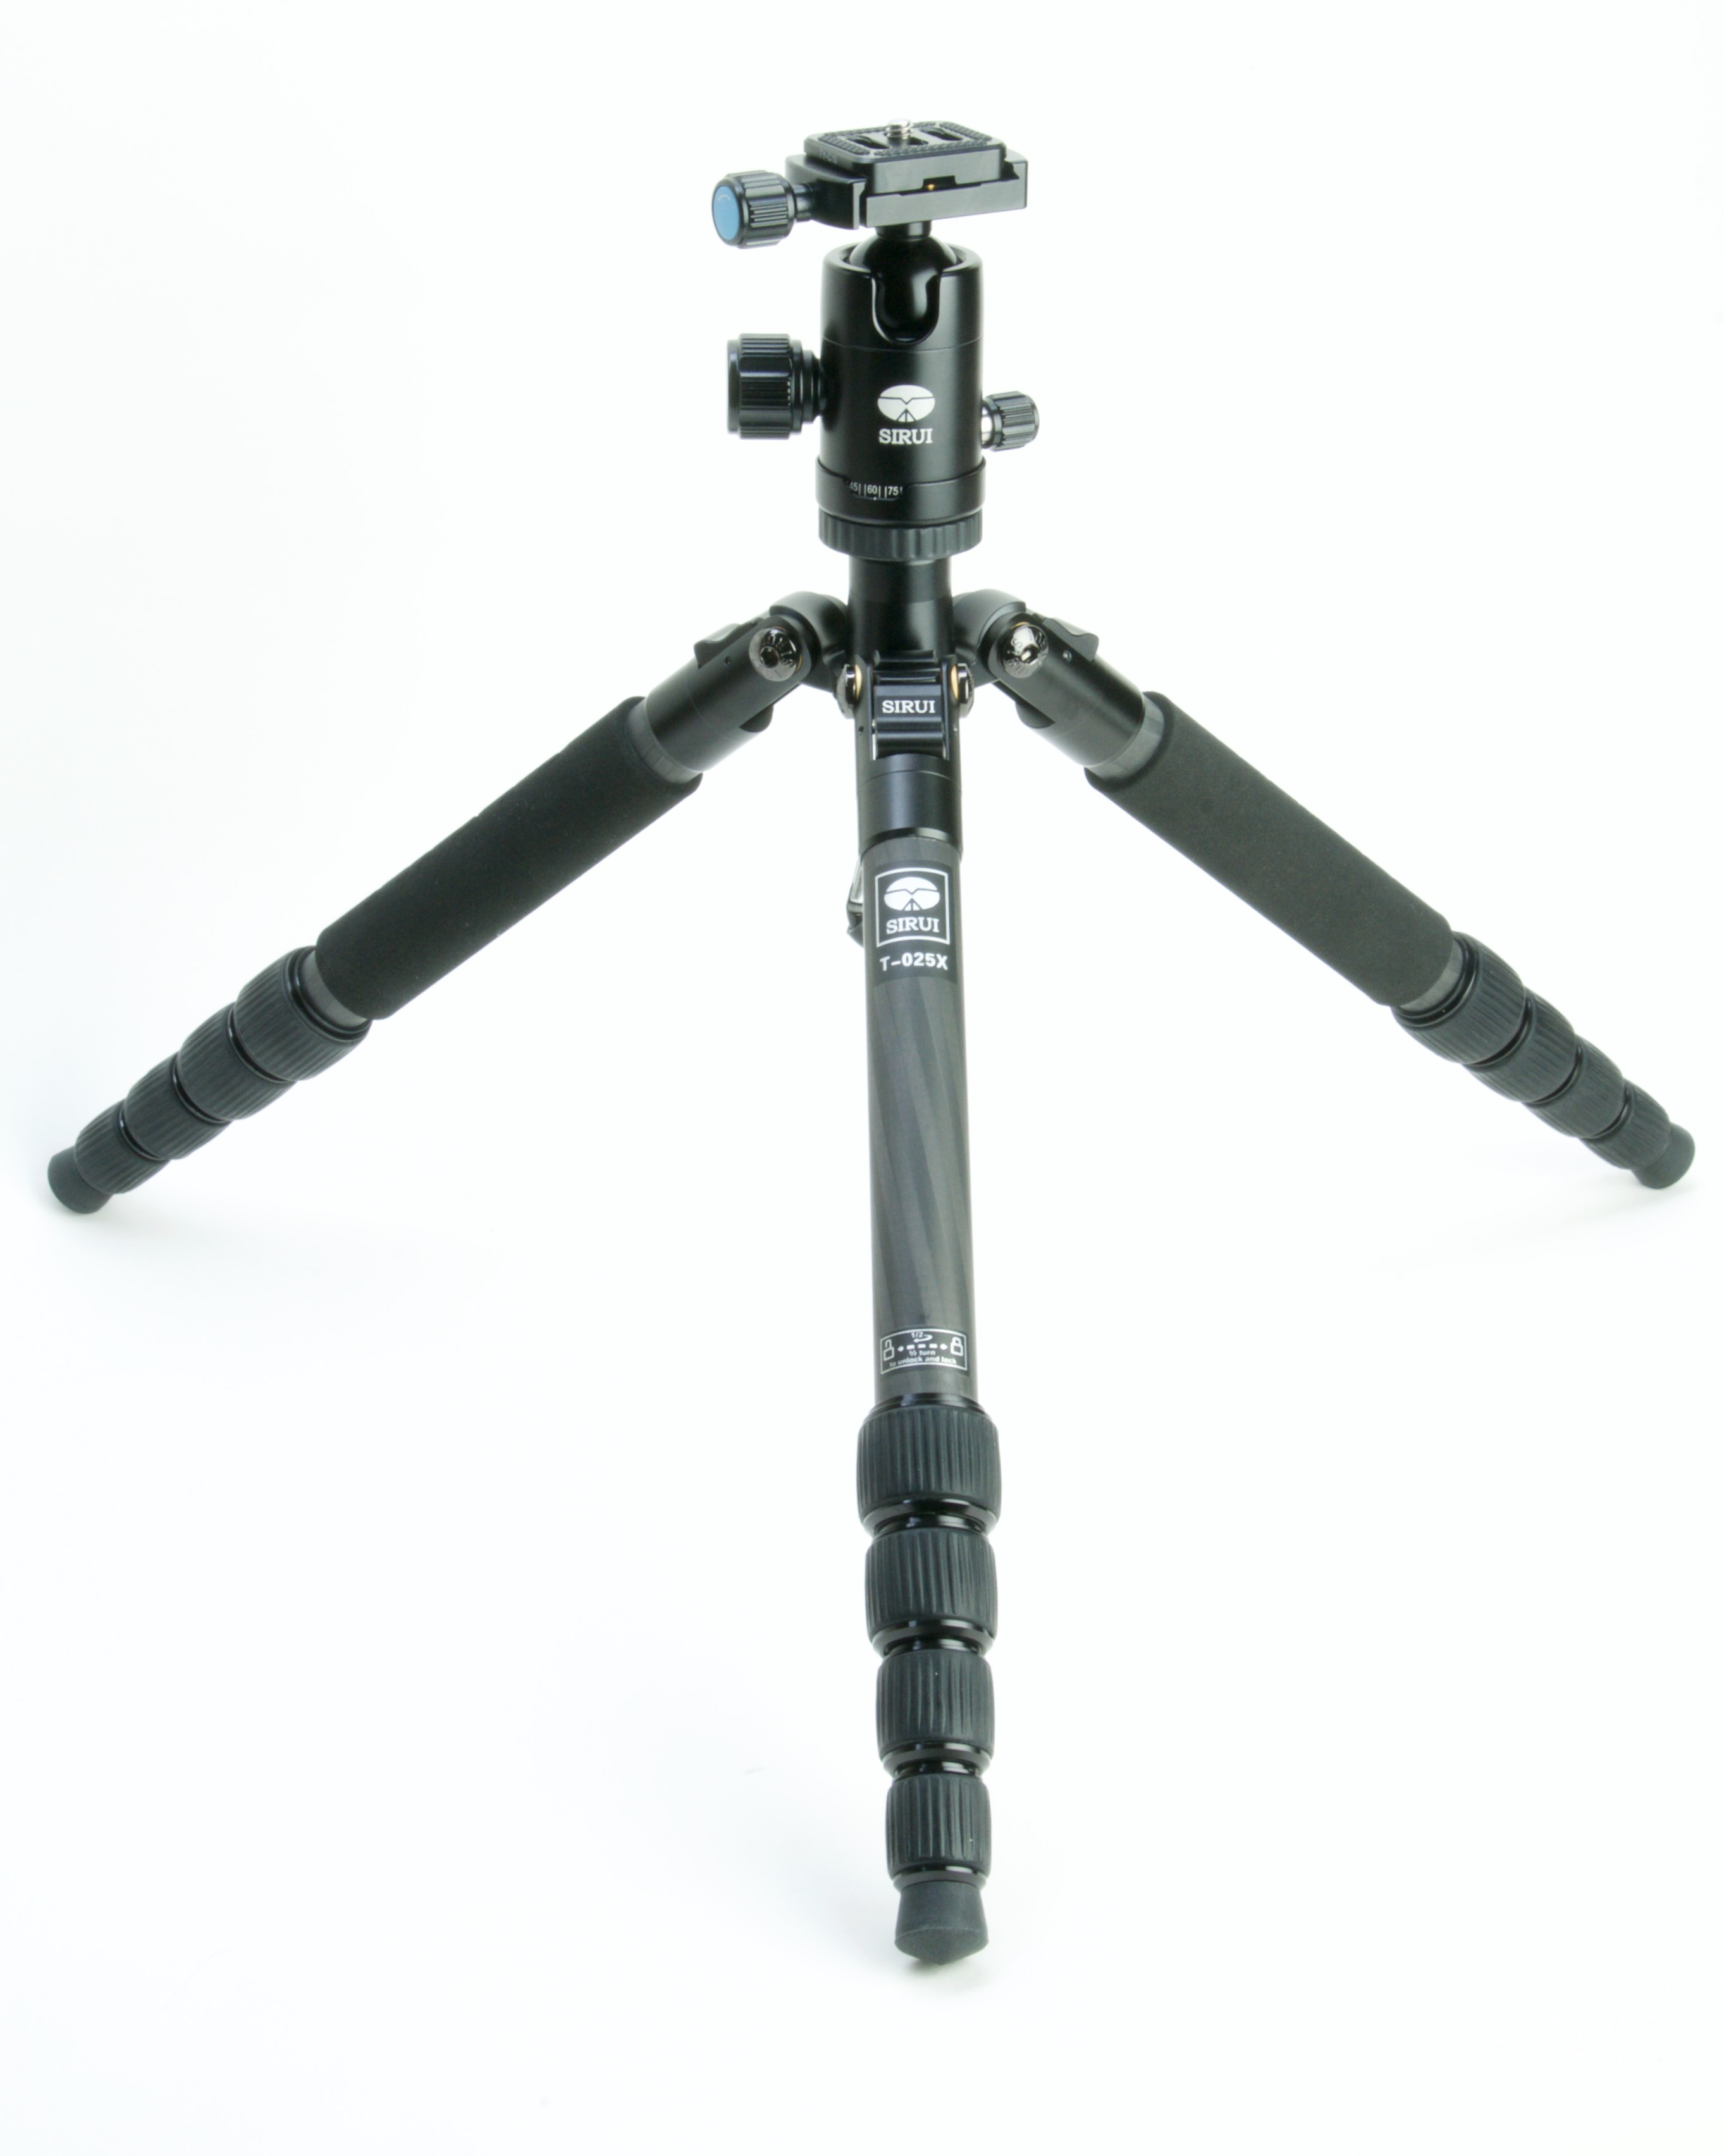 Tripod at second leg angle